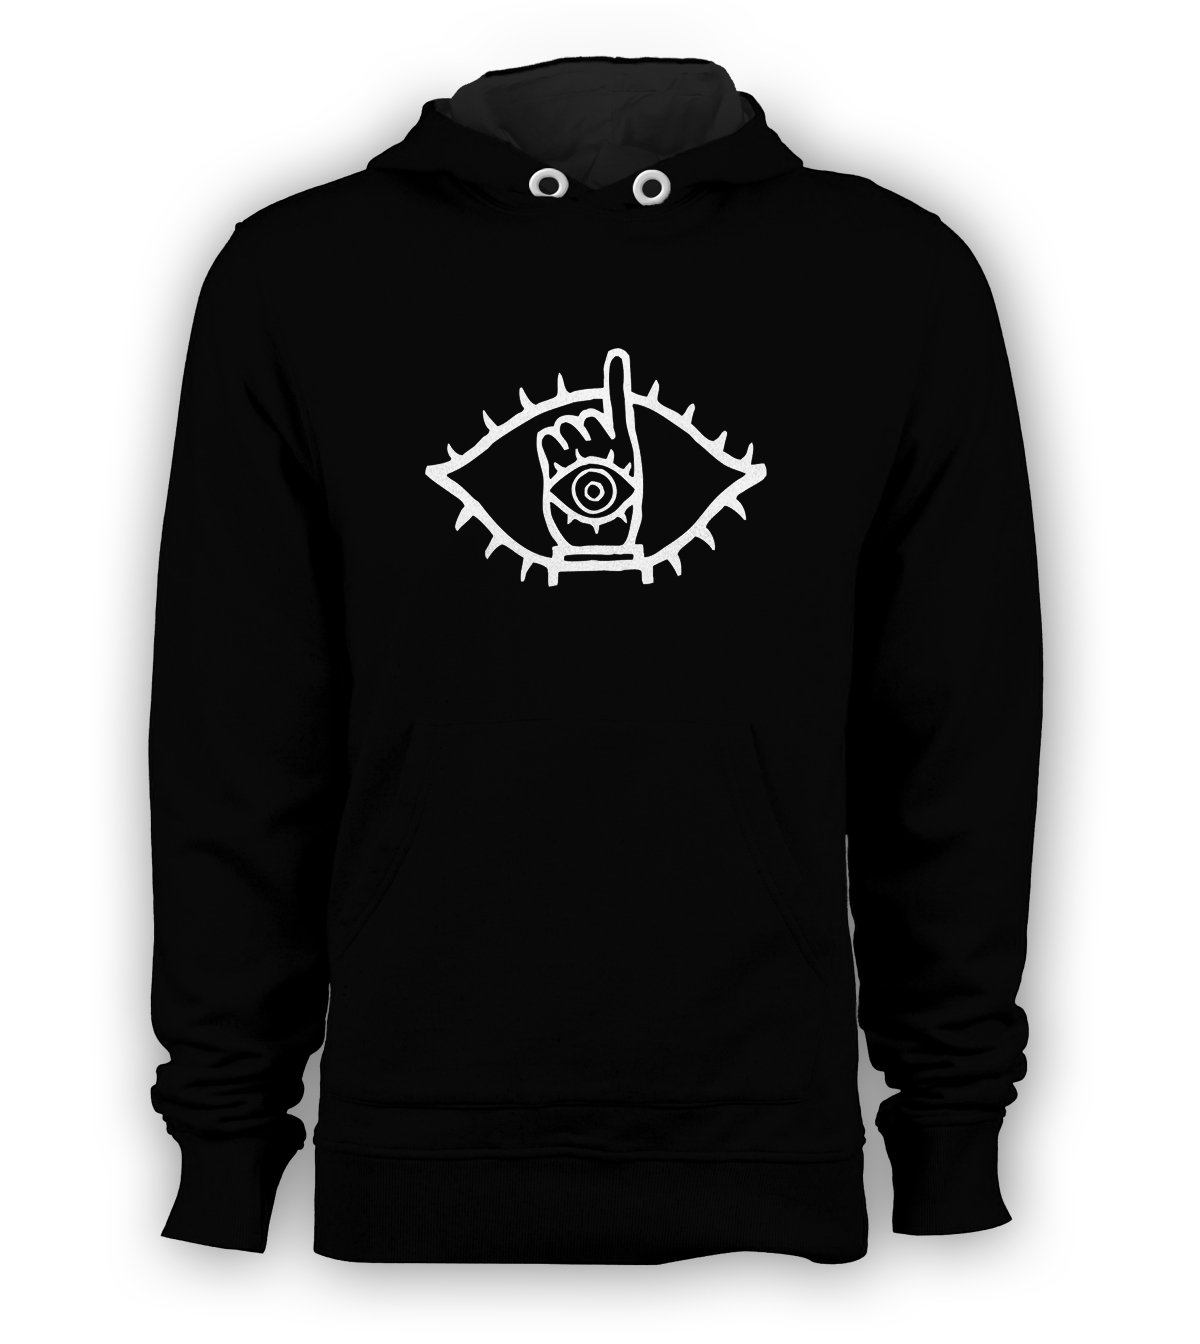 20th Century Boys Anime Manga Pullover Hoodie Men Sweatshirts S to 3XL New Black